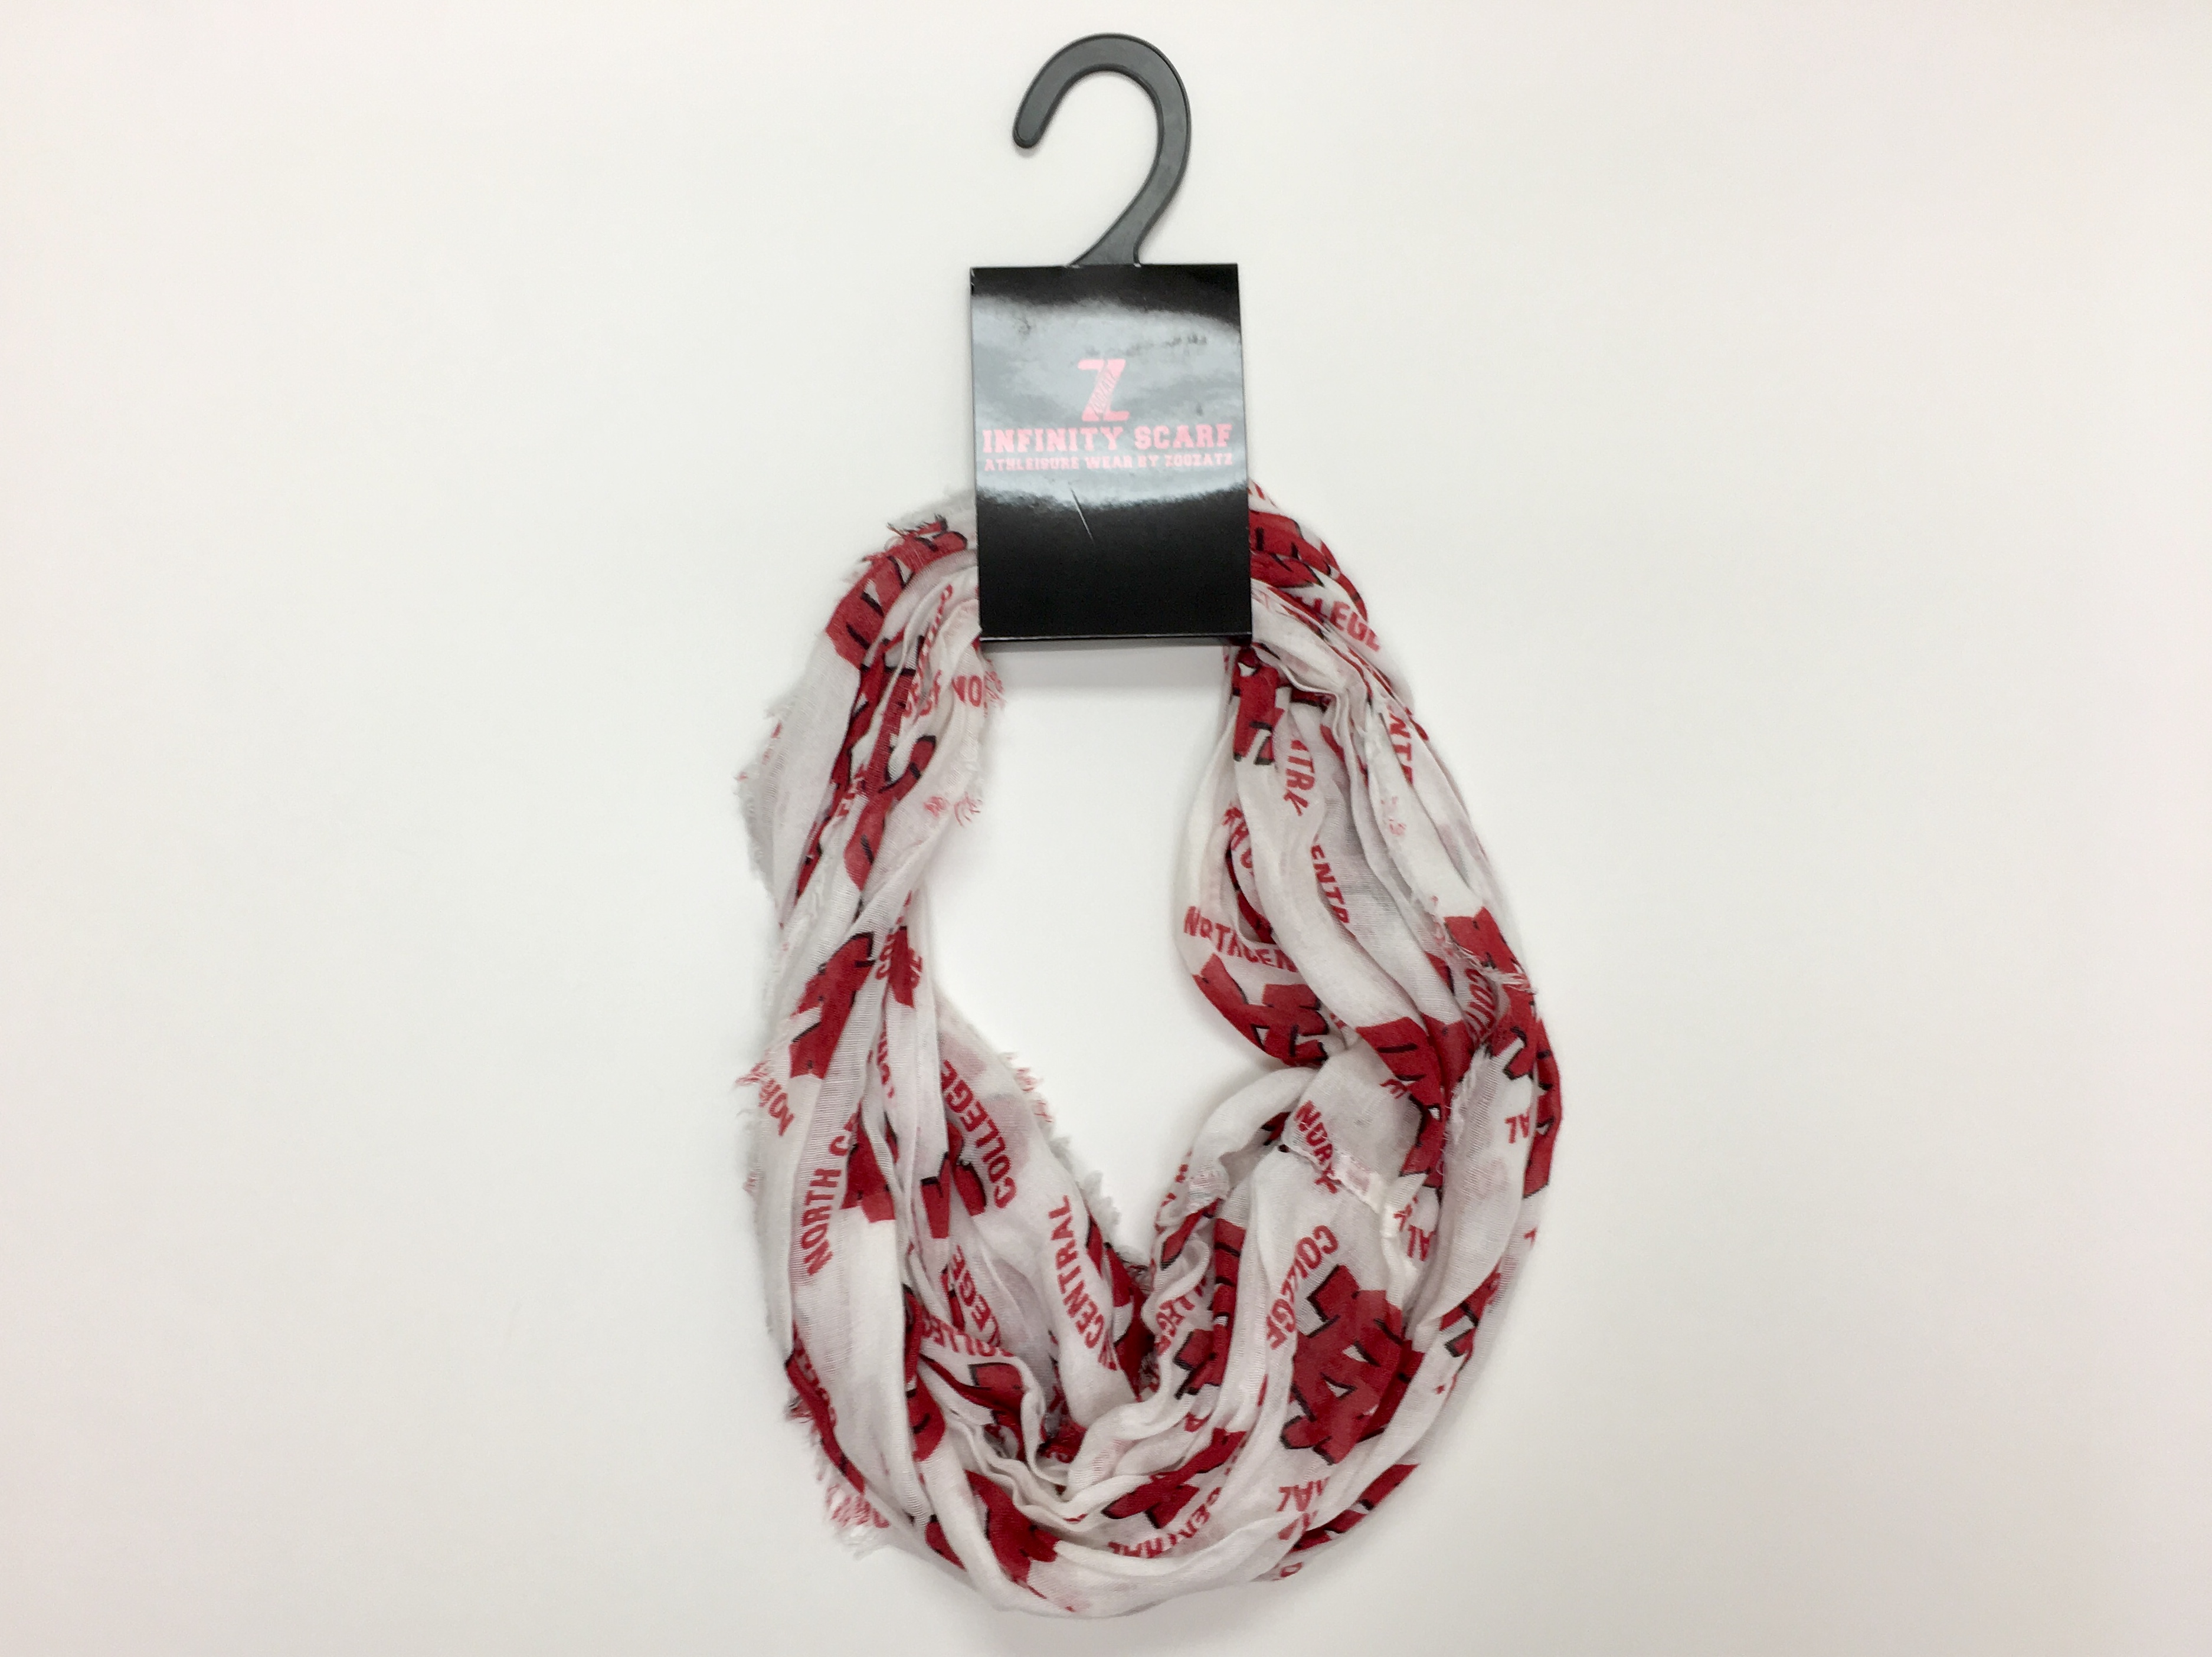 Image for the ZOOZATZ Infinity Scarf White w/Red Logo product